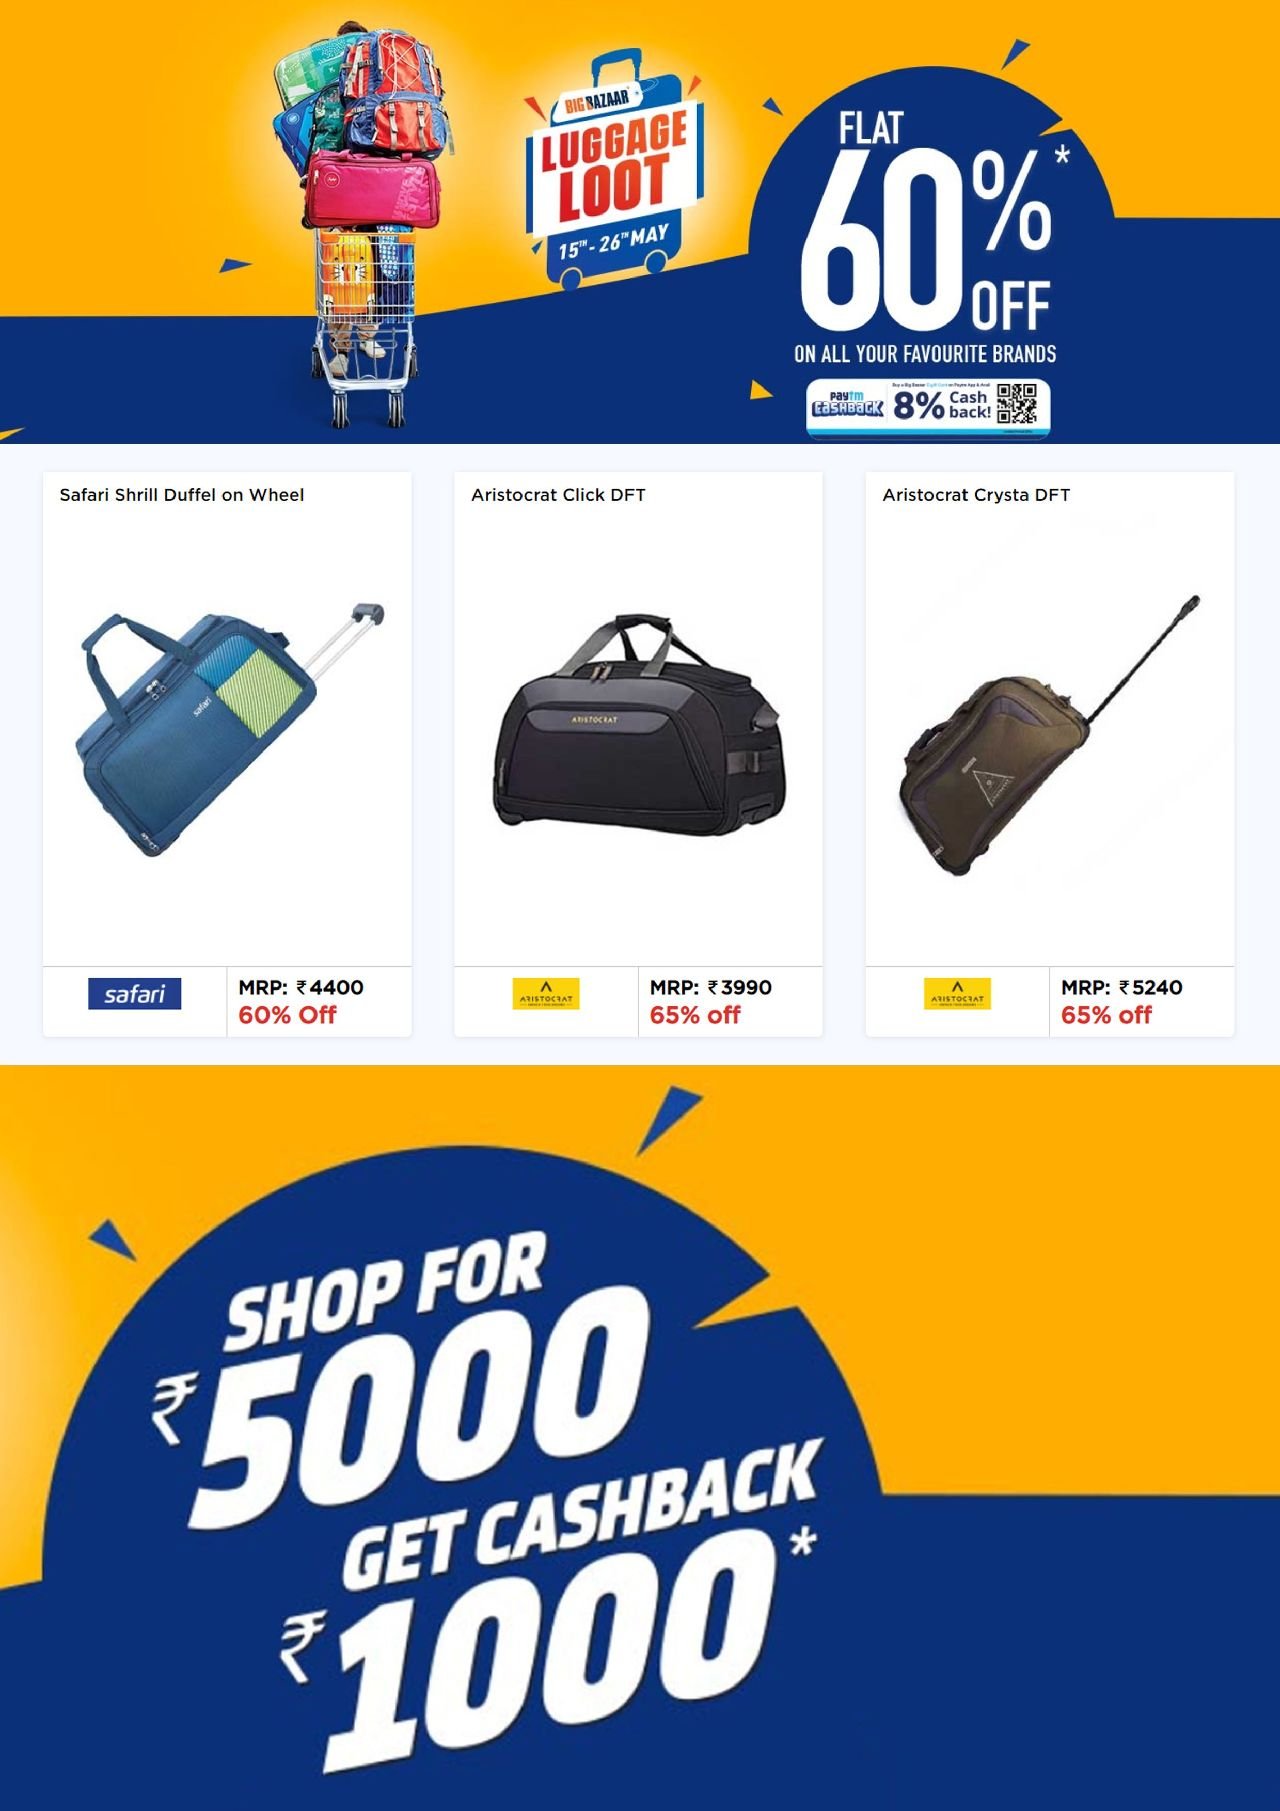 Big Bazaar catalogue valid from 15/05/2019 - page number 3